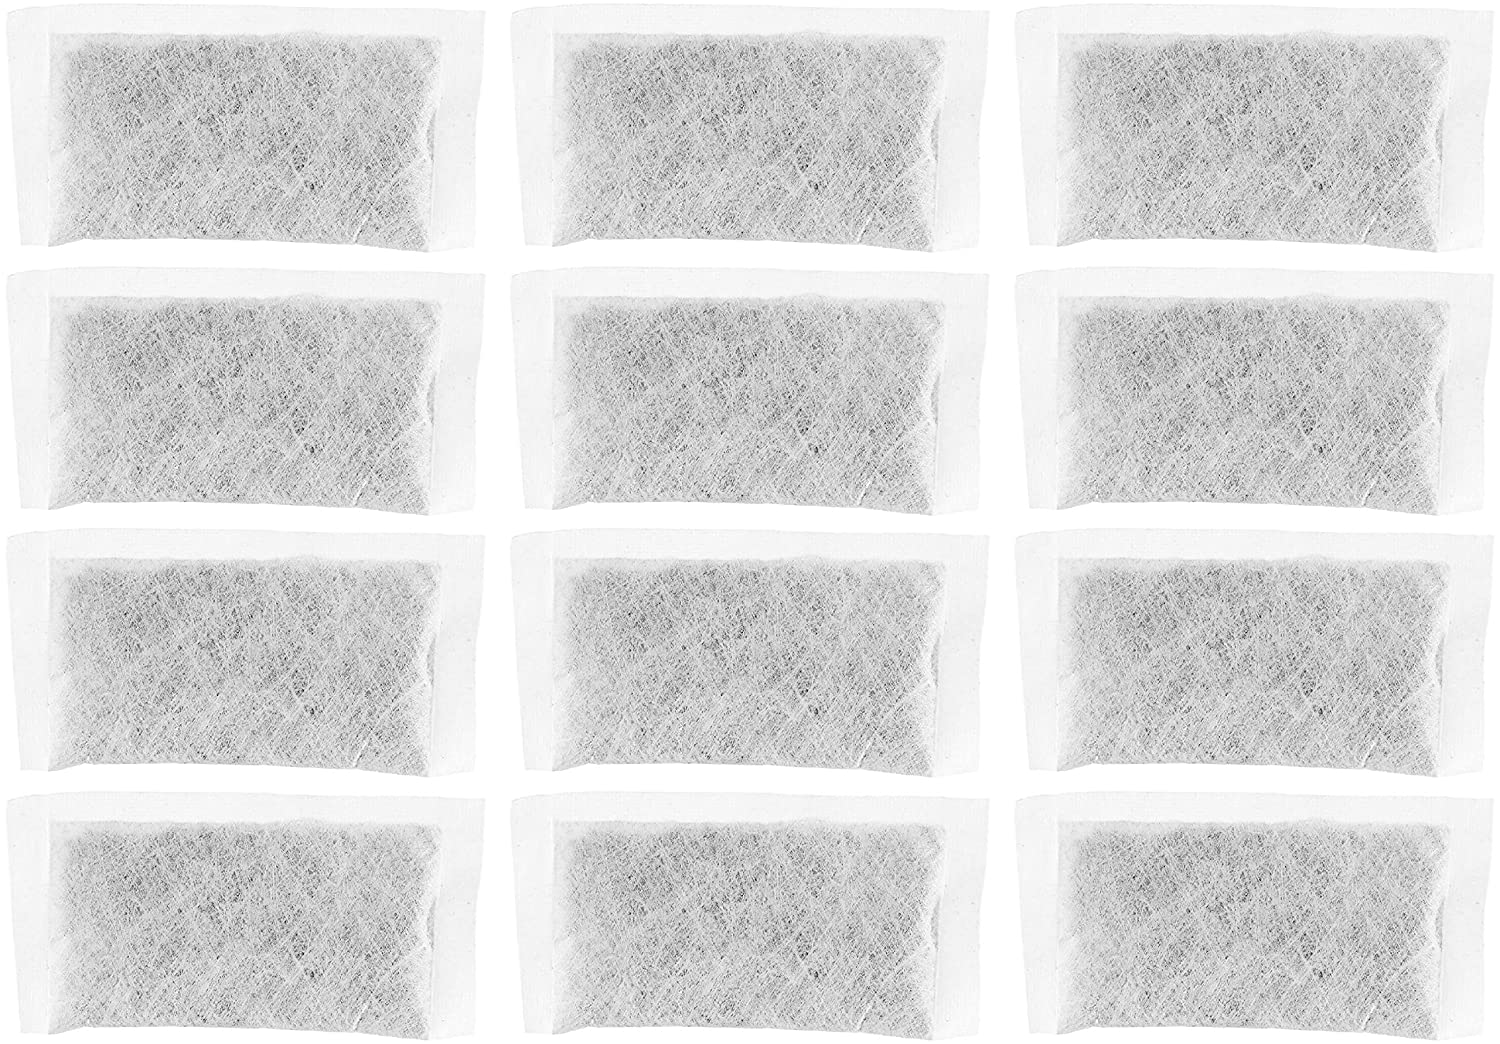 Nispira Replacement Activated Charcoal Water Filters for Megahome and Other Countertop Water Distiller, 12 packs